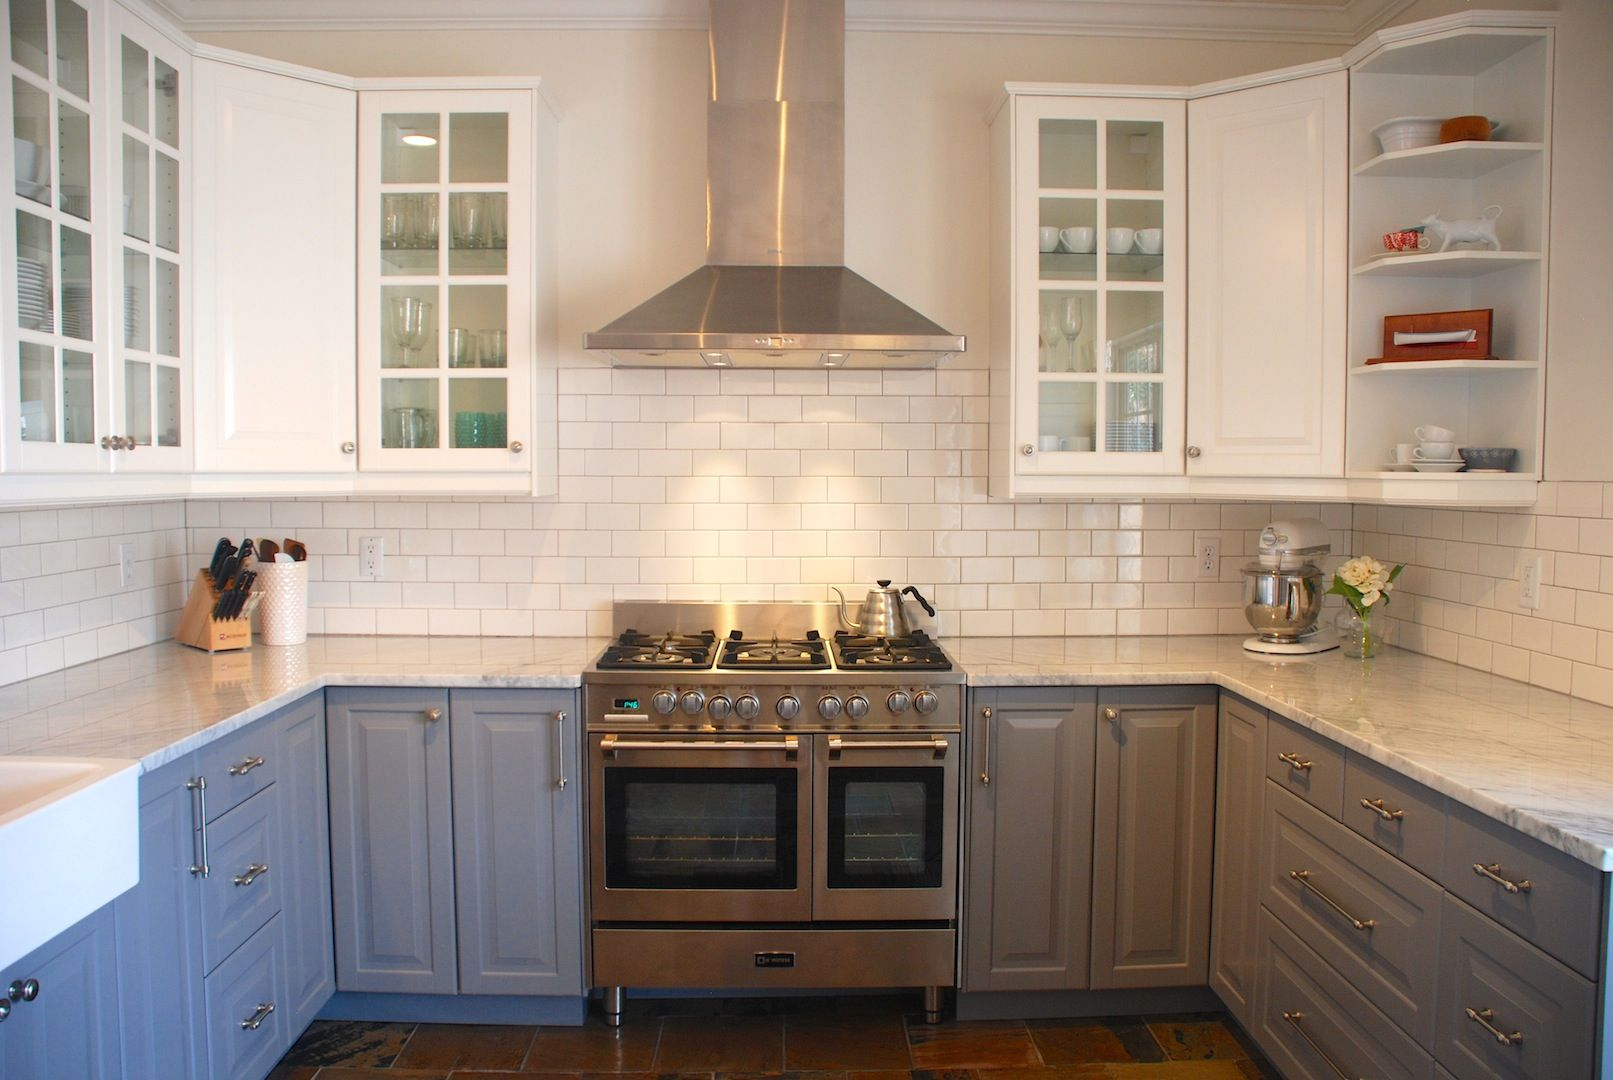 Ikea Lidingo Gray lower cabinets with Lidingo white upper cabinets ...